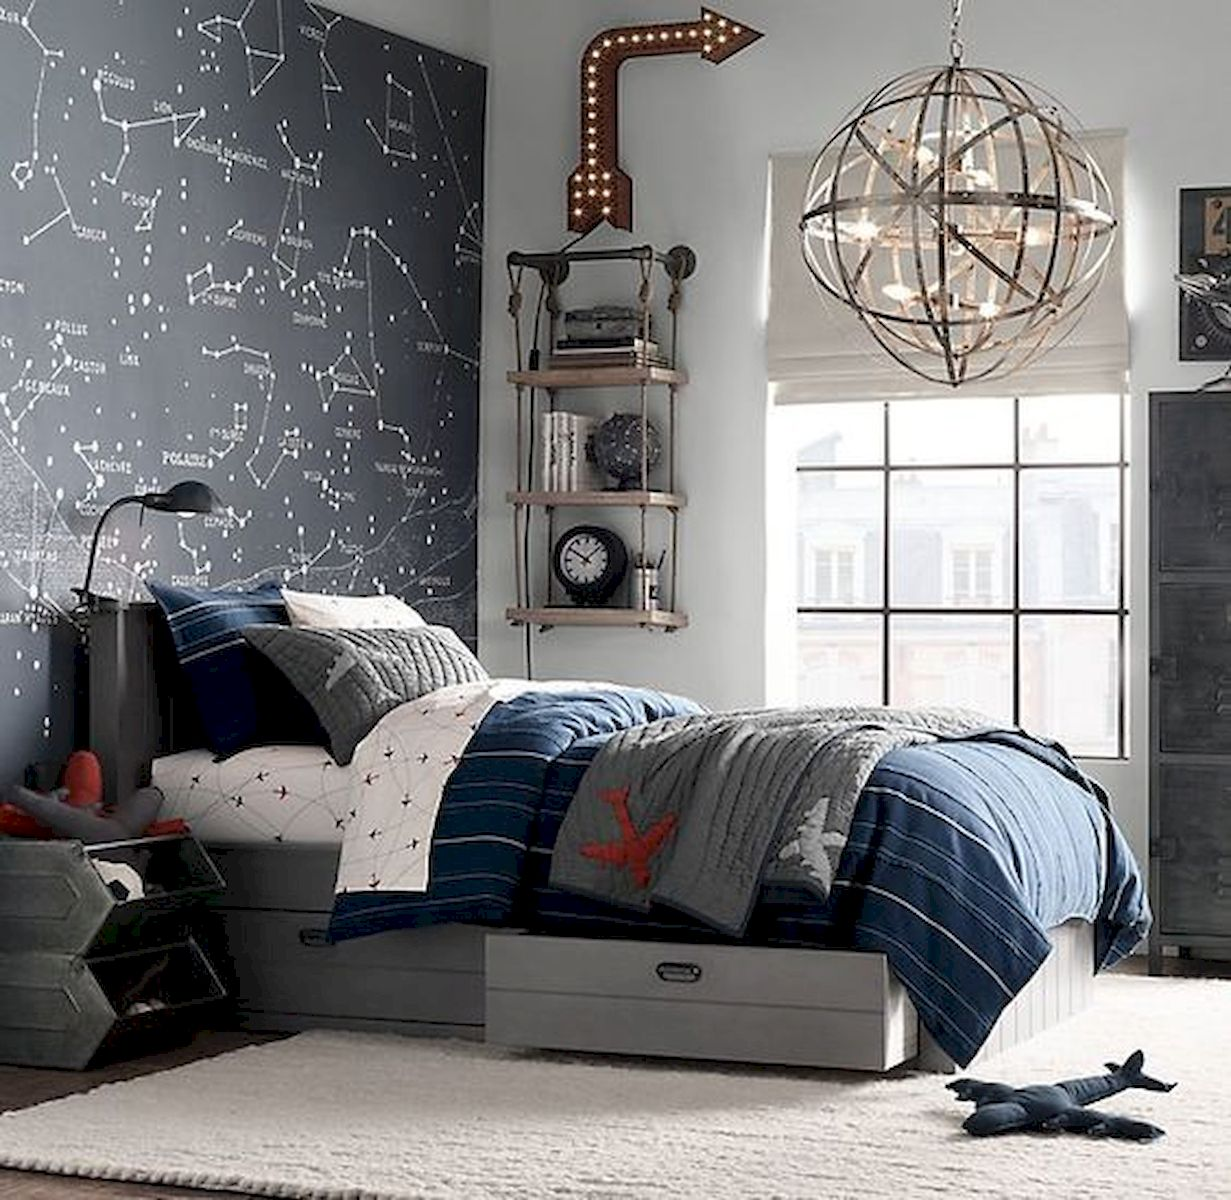 45 Cool Boys Bedroom Ideas to Try at Home (19)